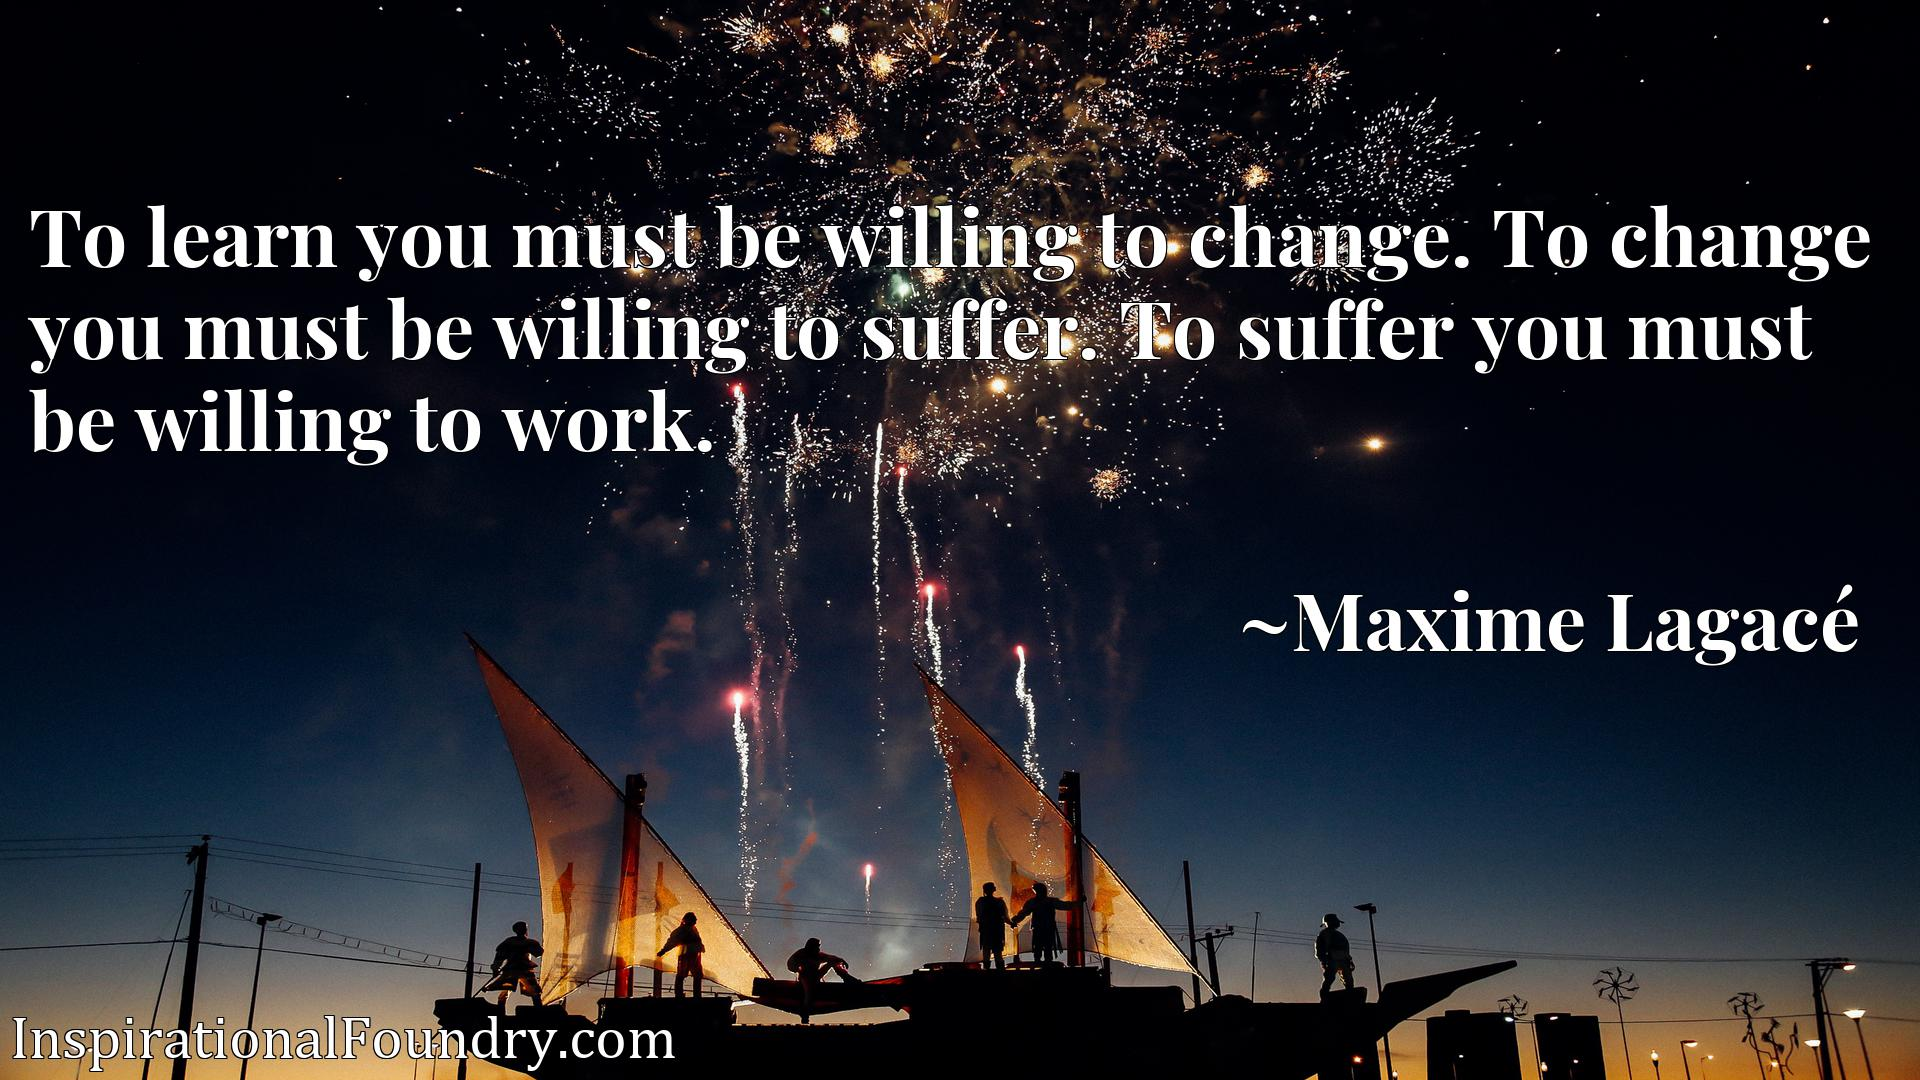 To learn you must be willing to change. To change you must be willing to suffer. To suffer you must be willing to work.